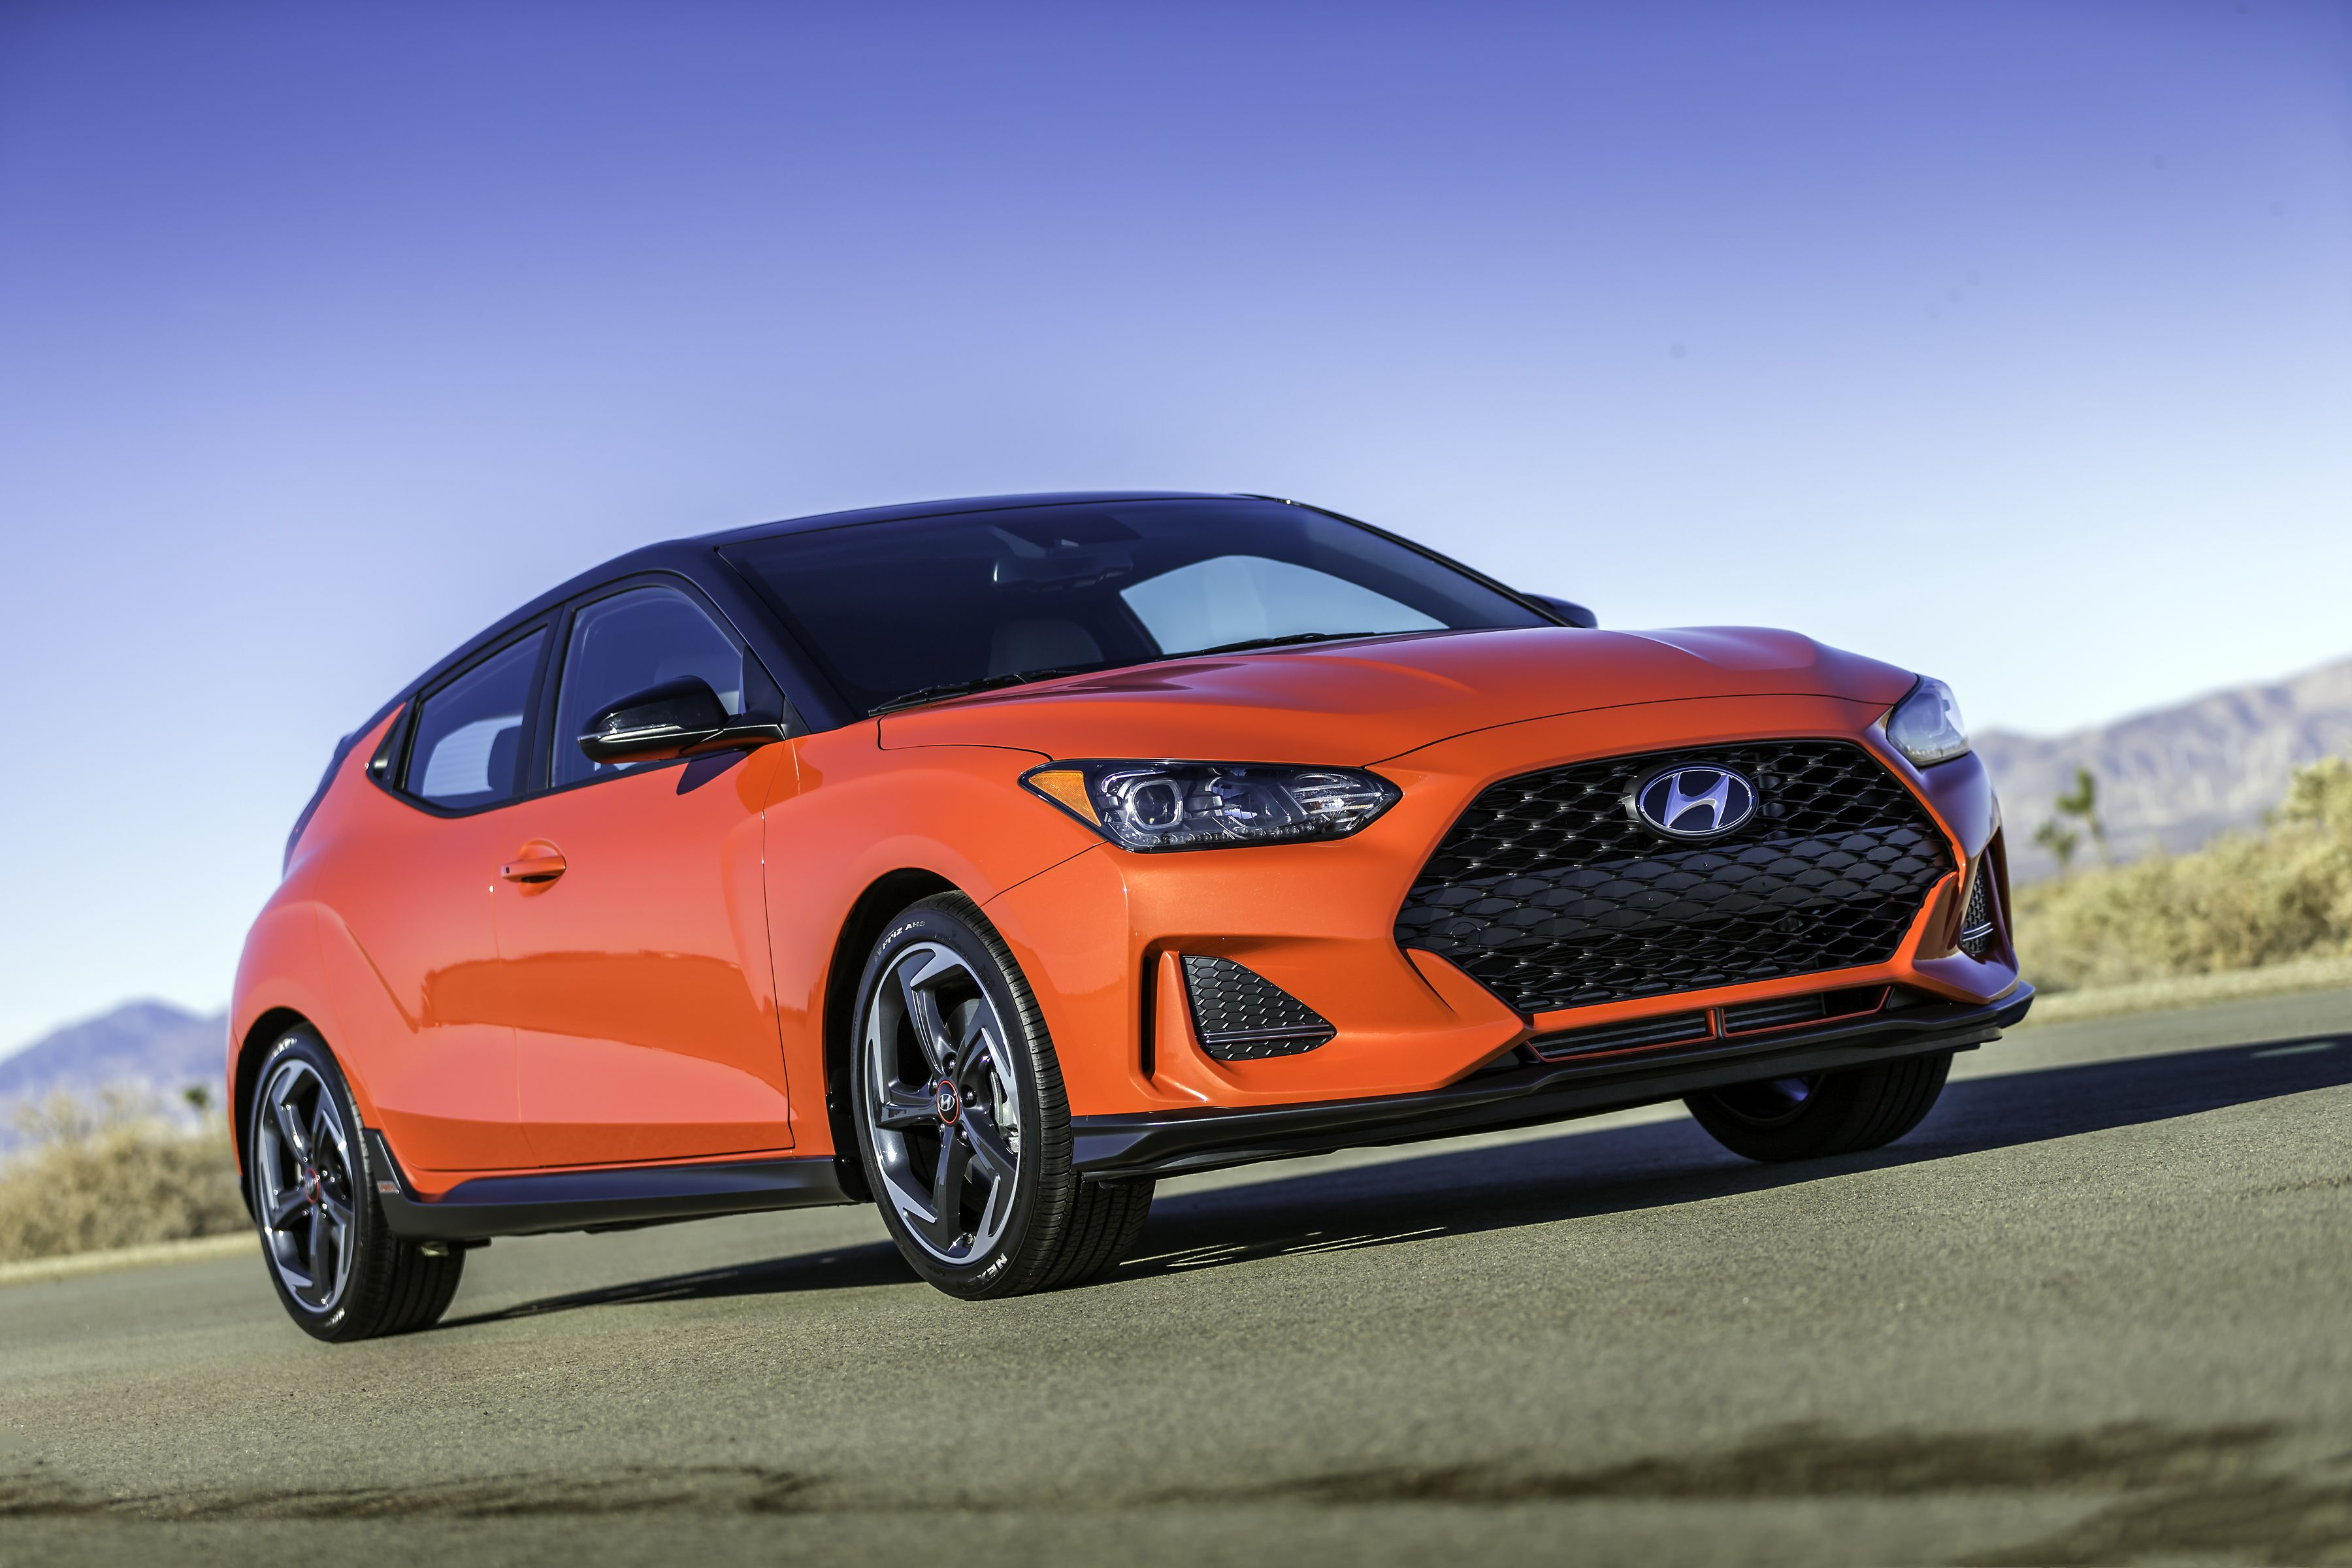 2019 Hyundai Veloster Makes Its Debut In Detroit New Veloster 2019 Photos Specs And Info